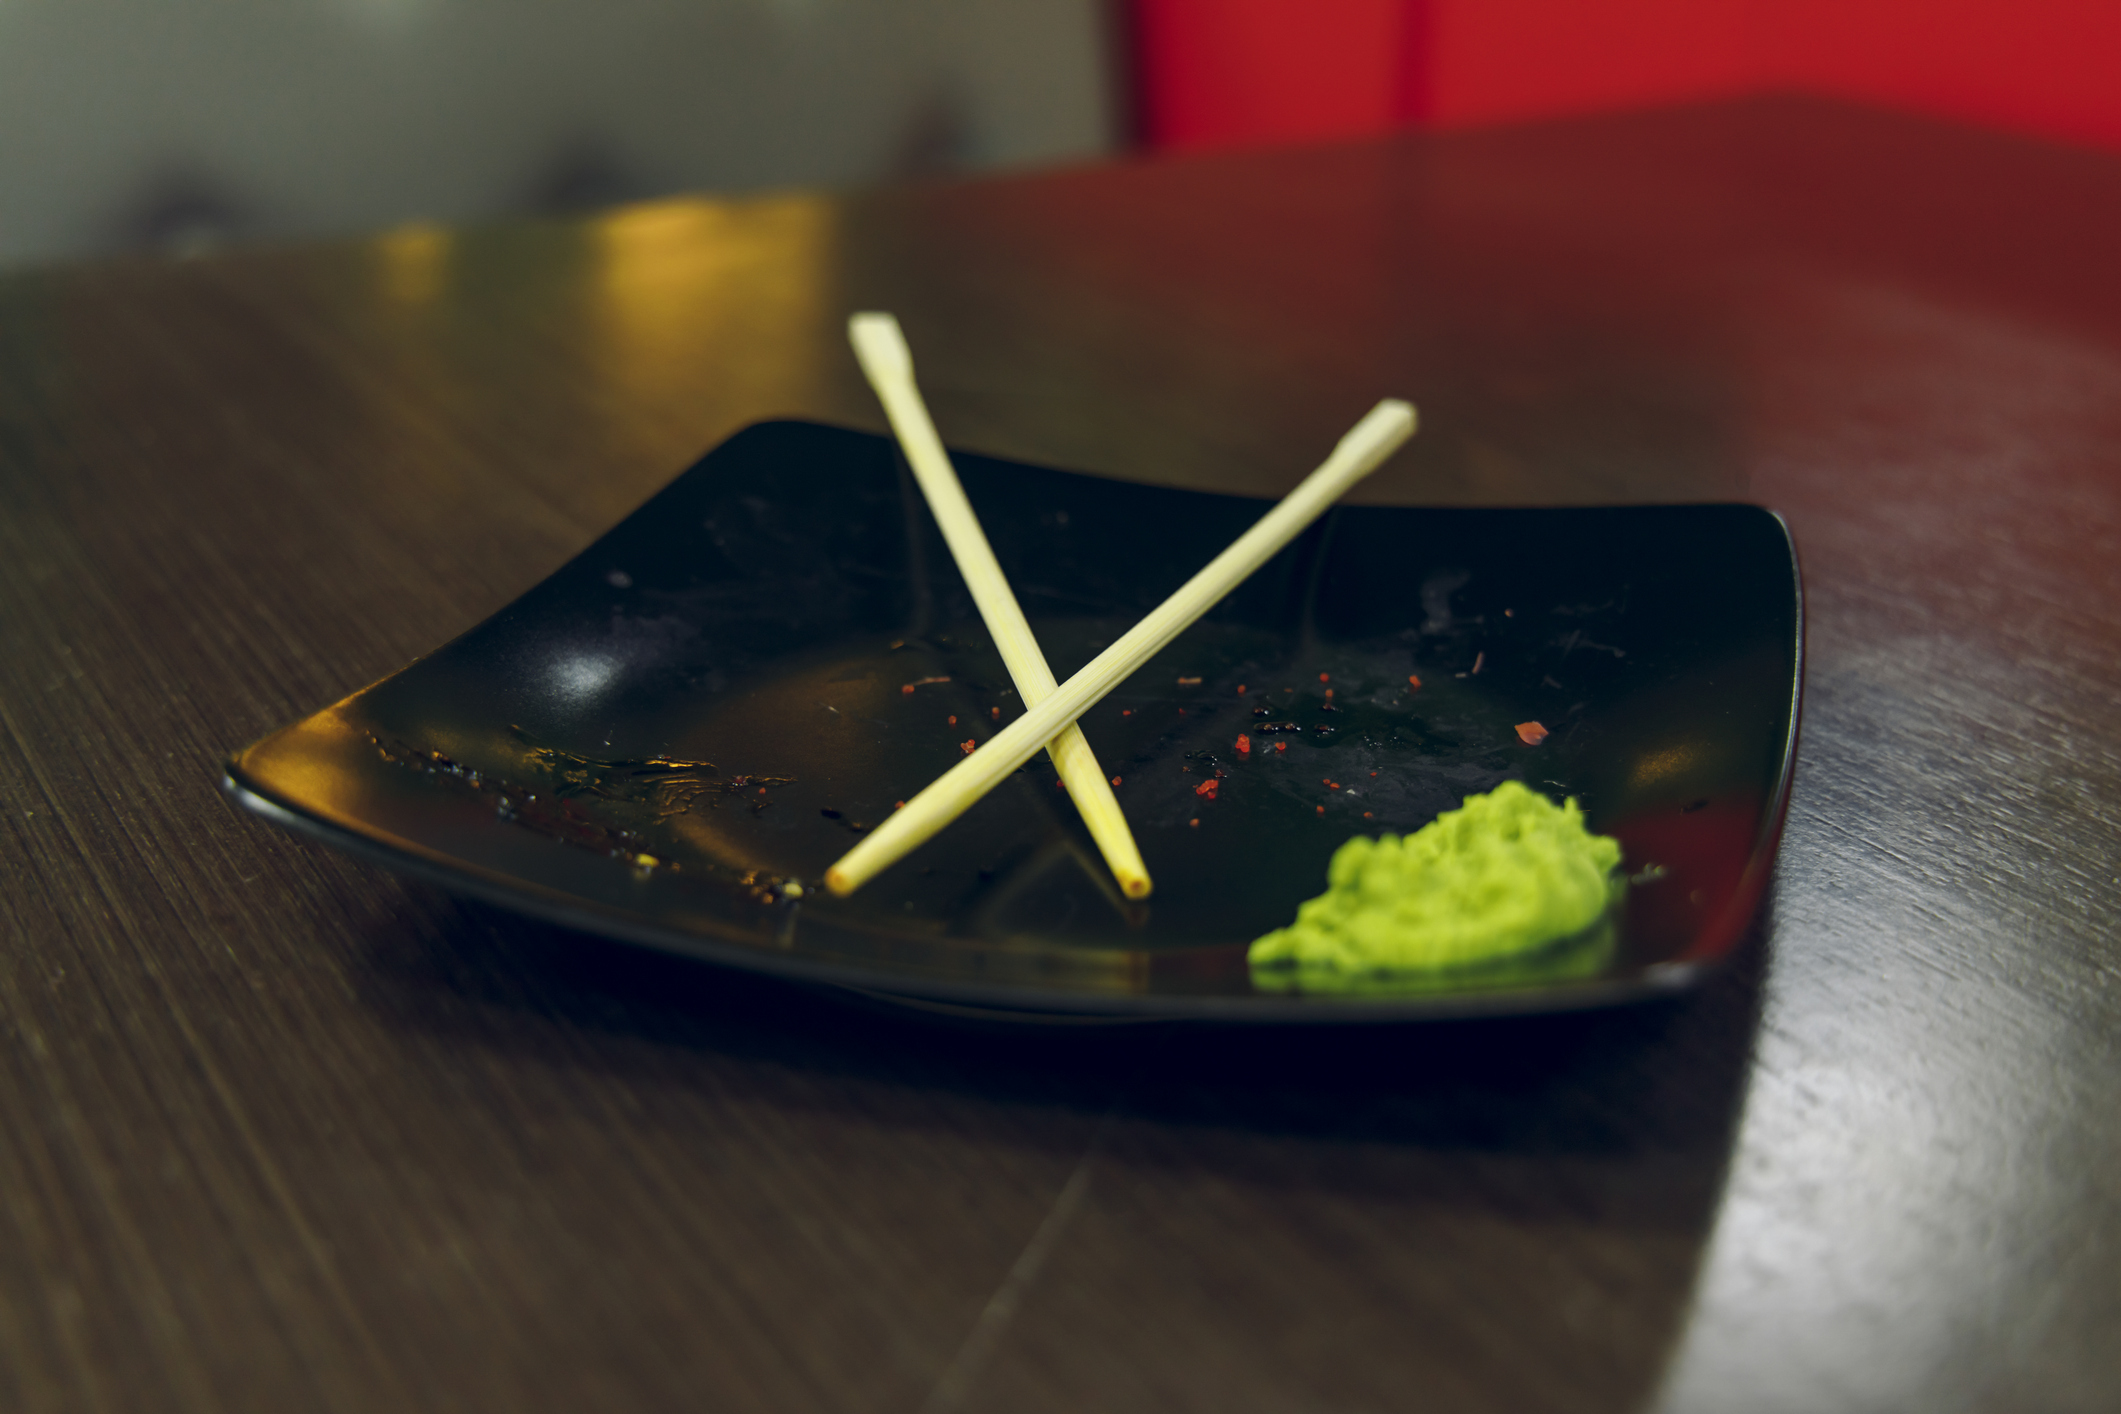 SushiSwap's Users Ordered Changes, but the Protocol Can't Deliver Without an Overhaul